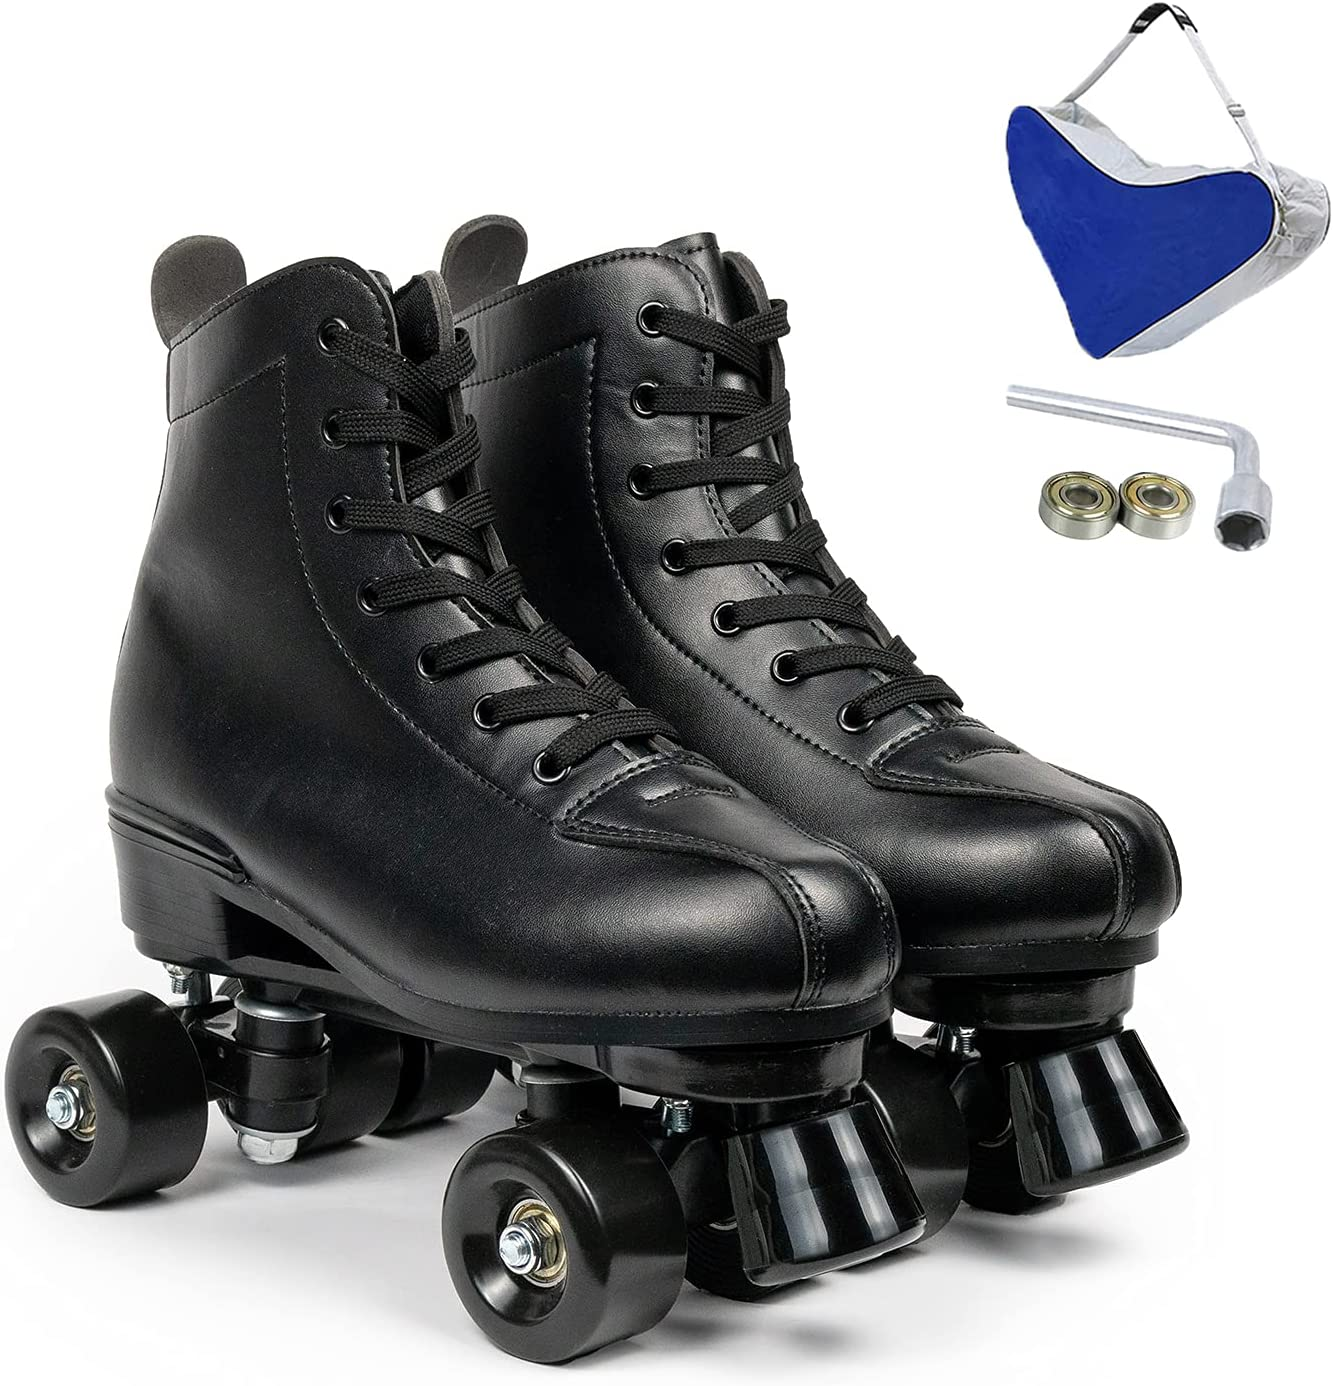 Safety and trust Roller Skates for Women Ranking TOP10 and Women's Men High-top Perfect